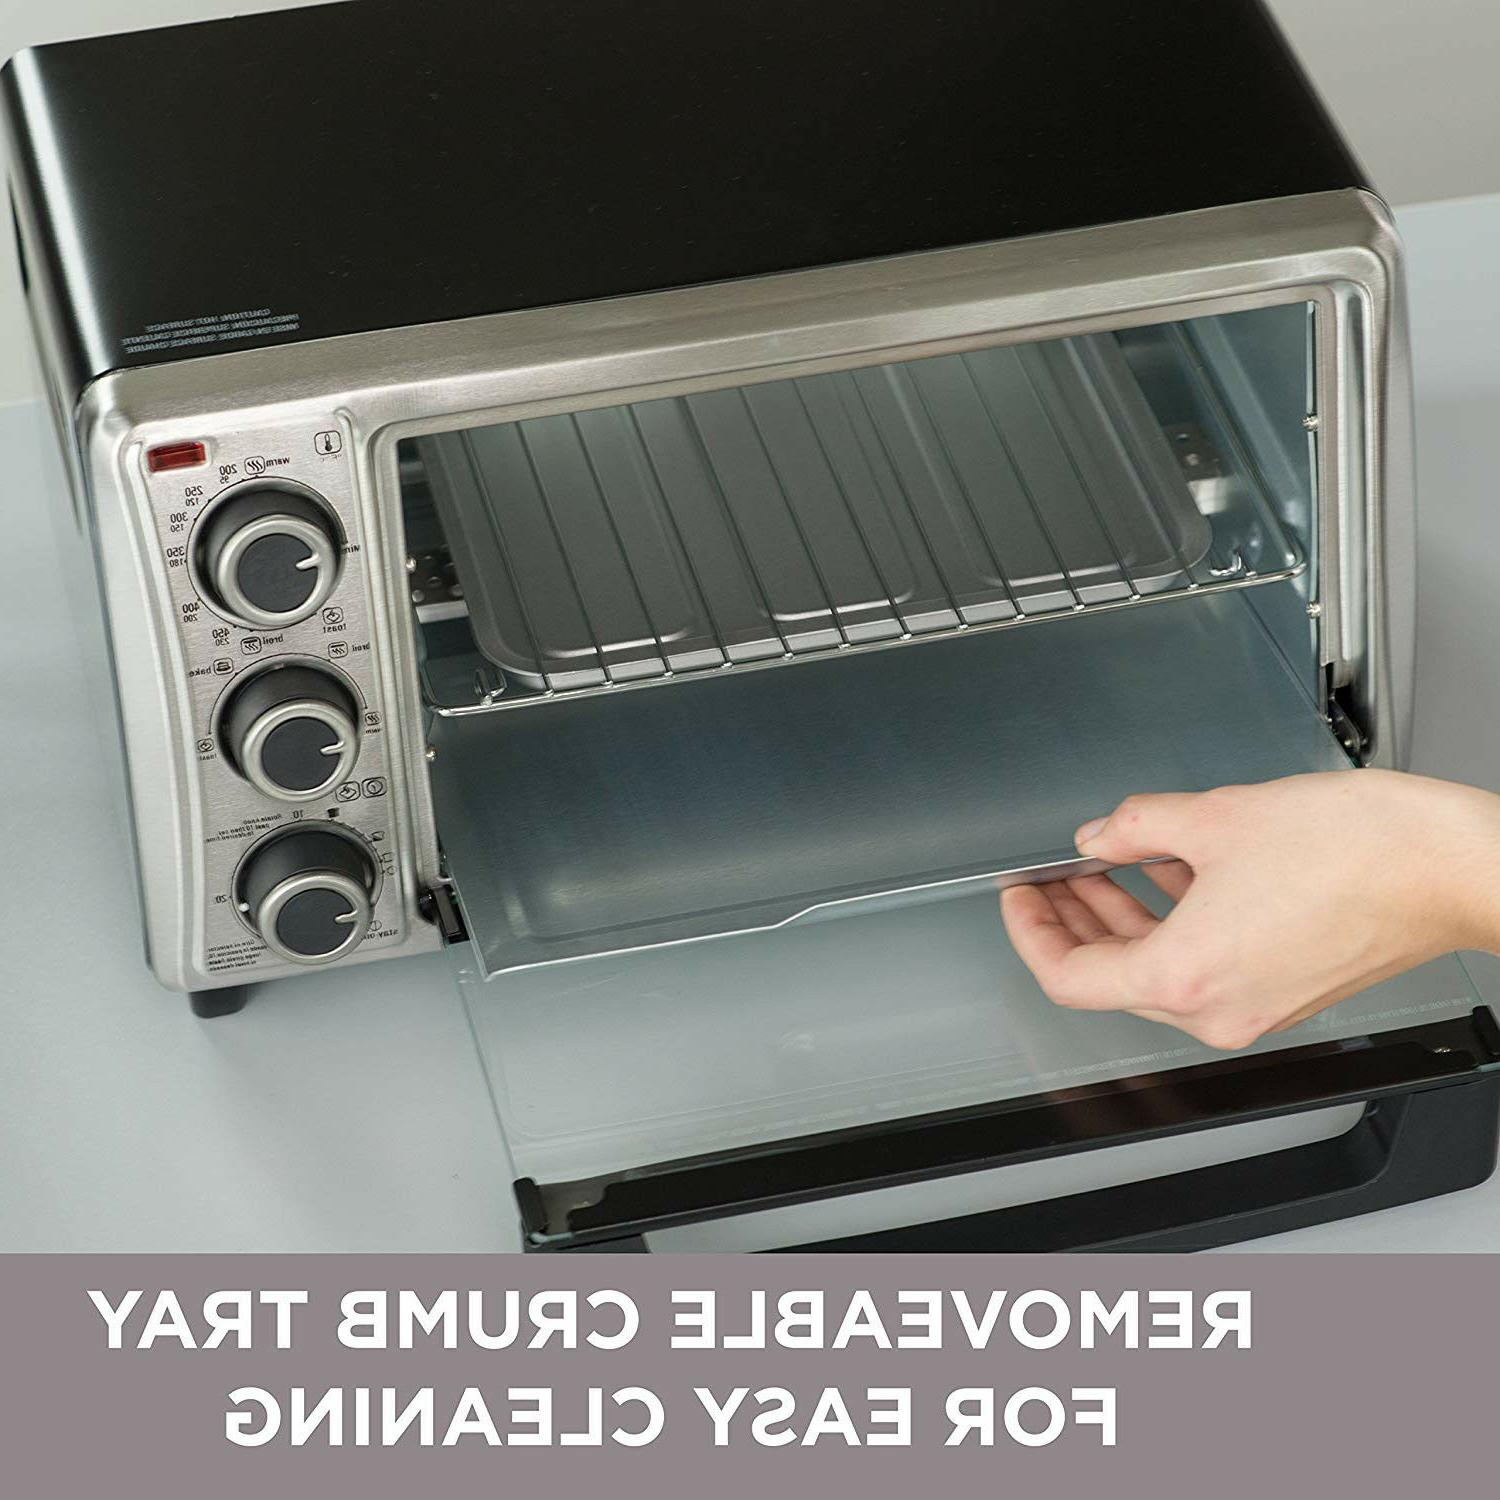 Stainless Steel Convection Countertop Toaster Oven Baking Black